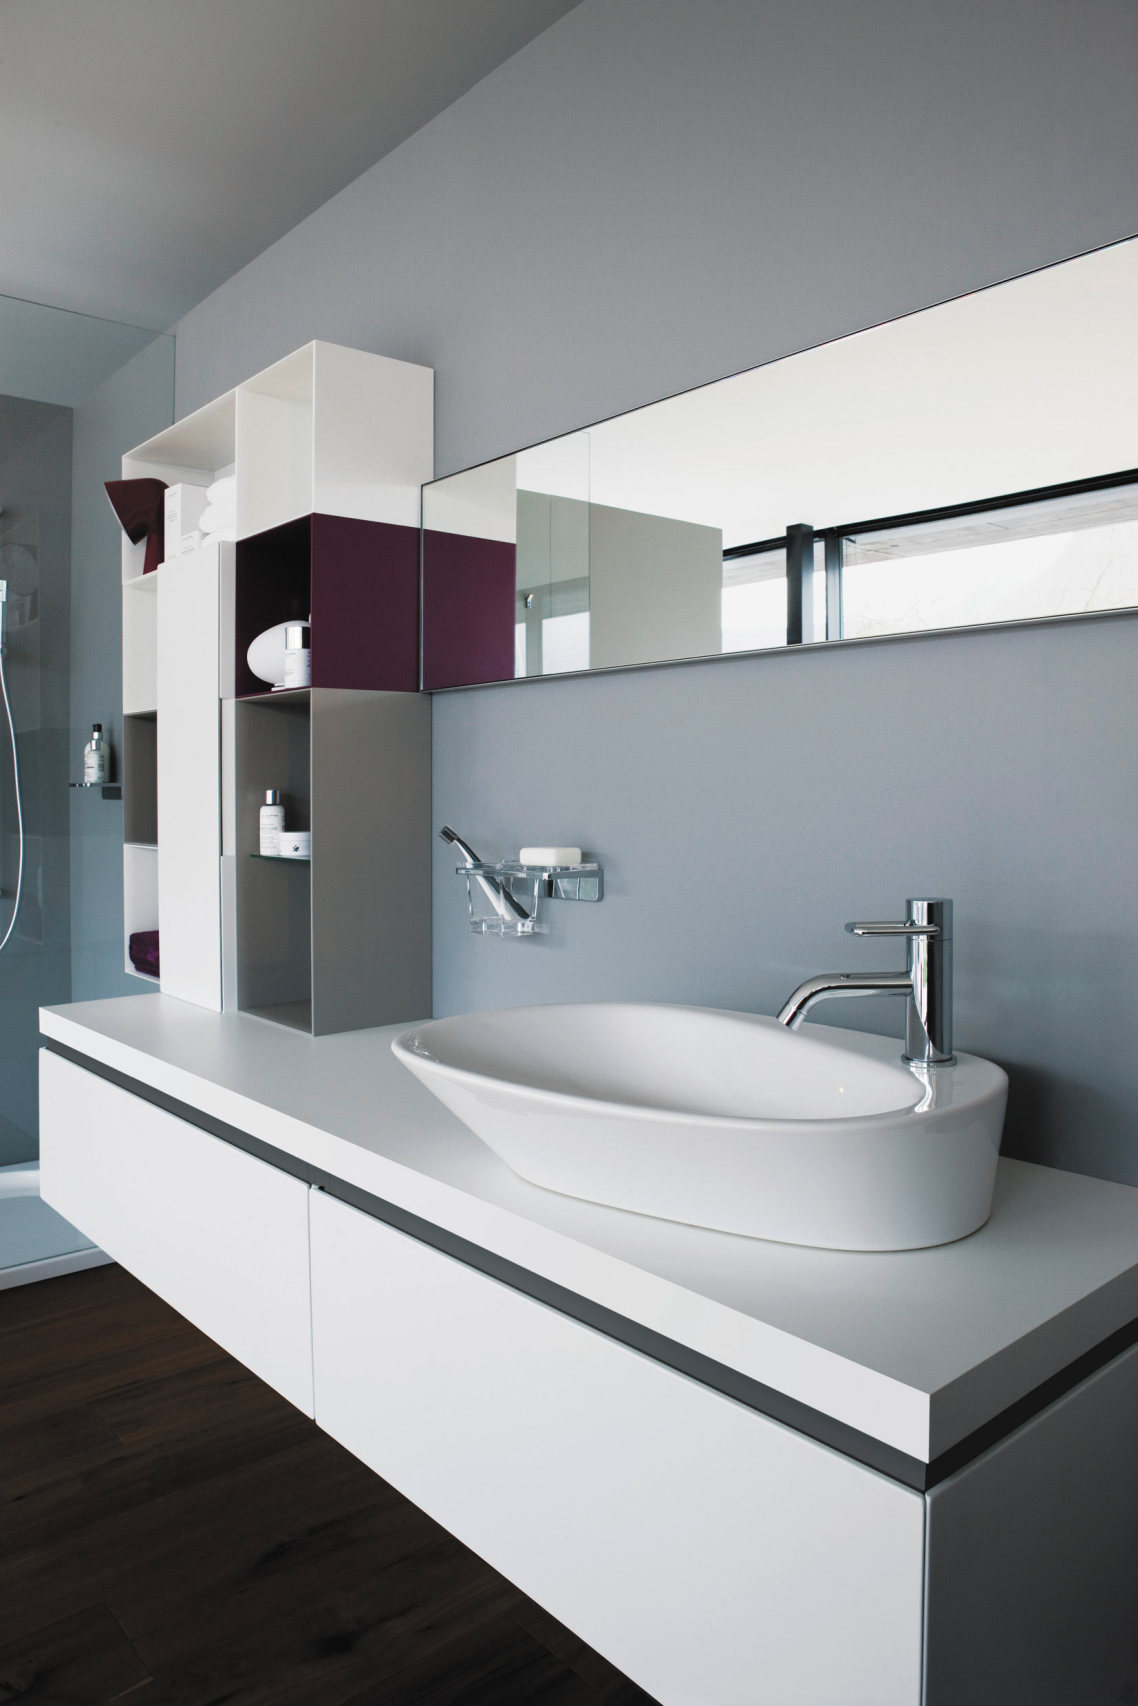 inspiring bathroom decoration with silver faucet direct plus white sink matched with gray ideas